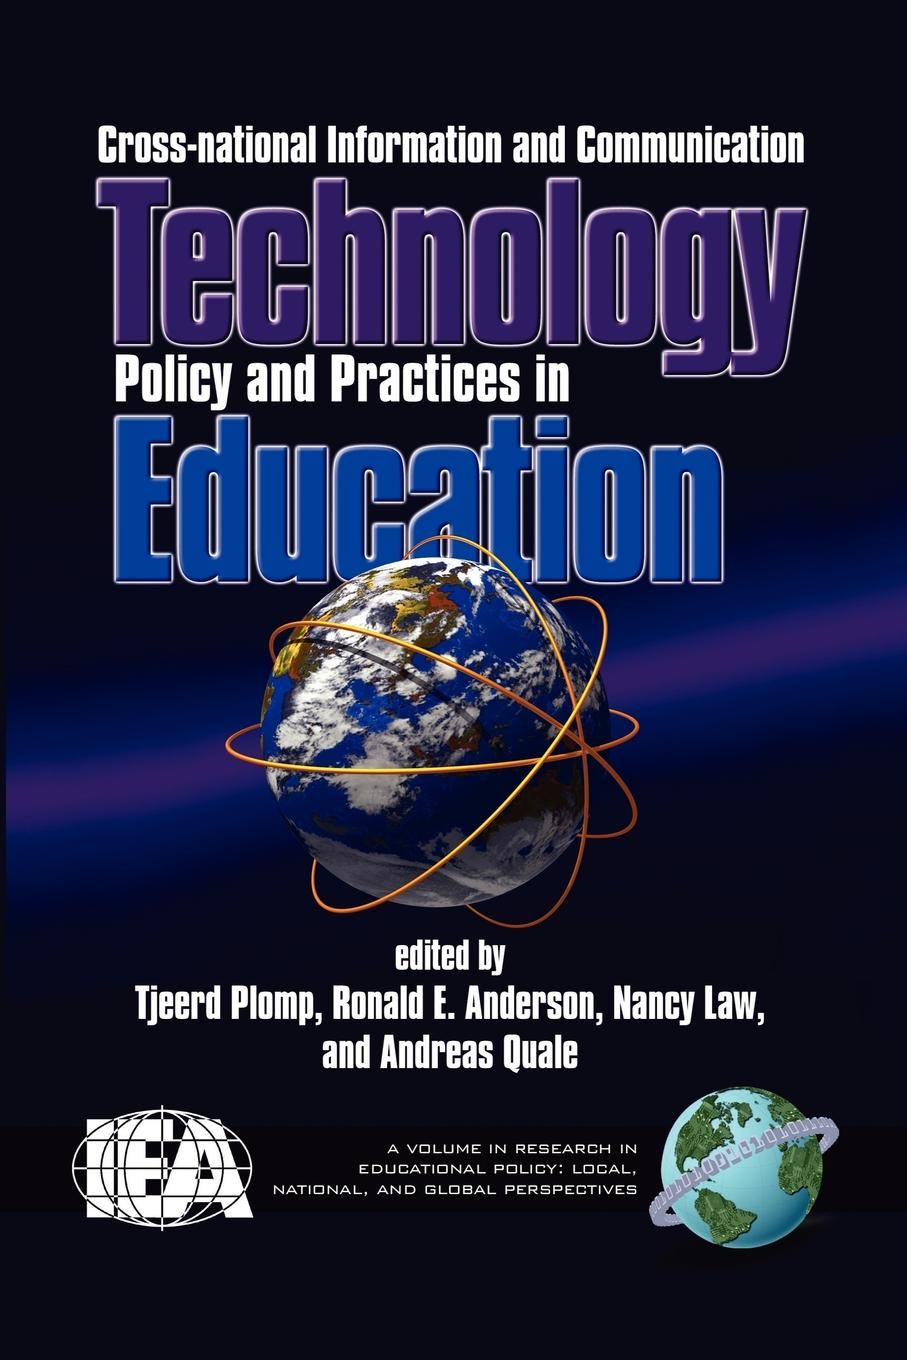 Cross-National Information and Communication Technology Polices and Practices in Education (PB) advancing democracy through education u s influence abroad and domestic practices pb